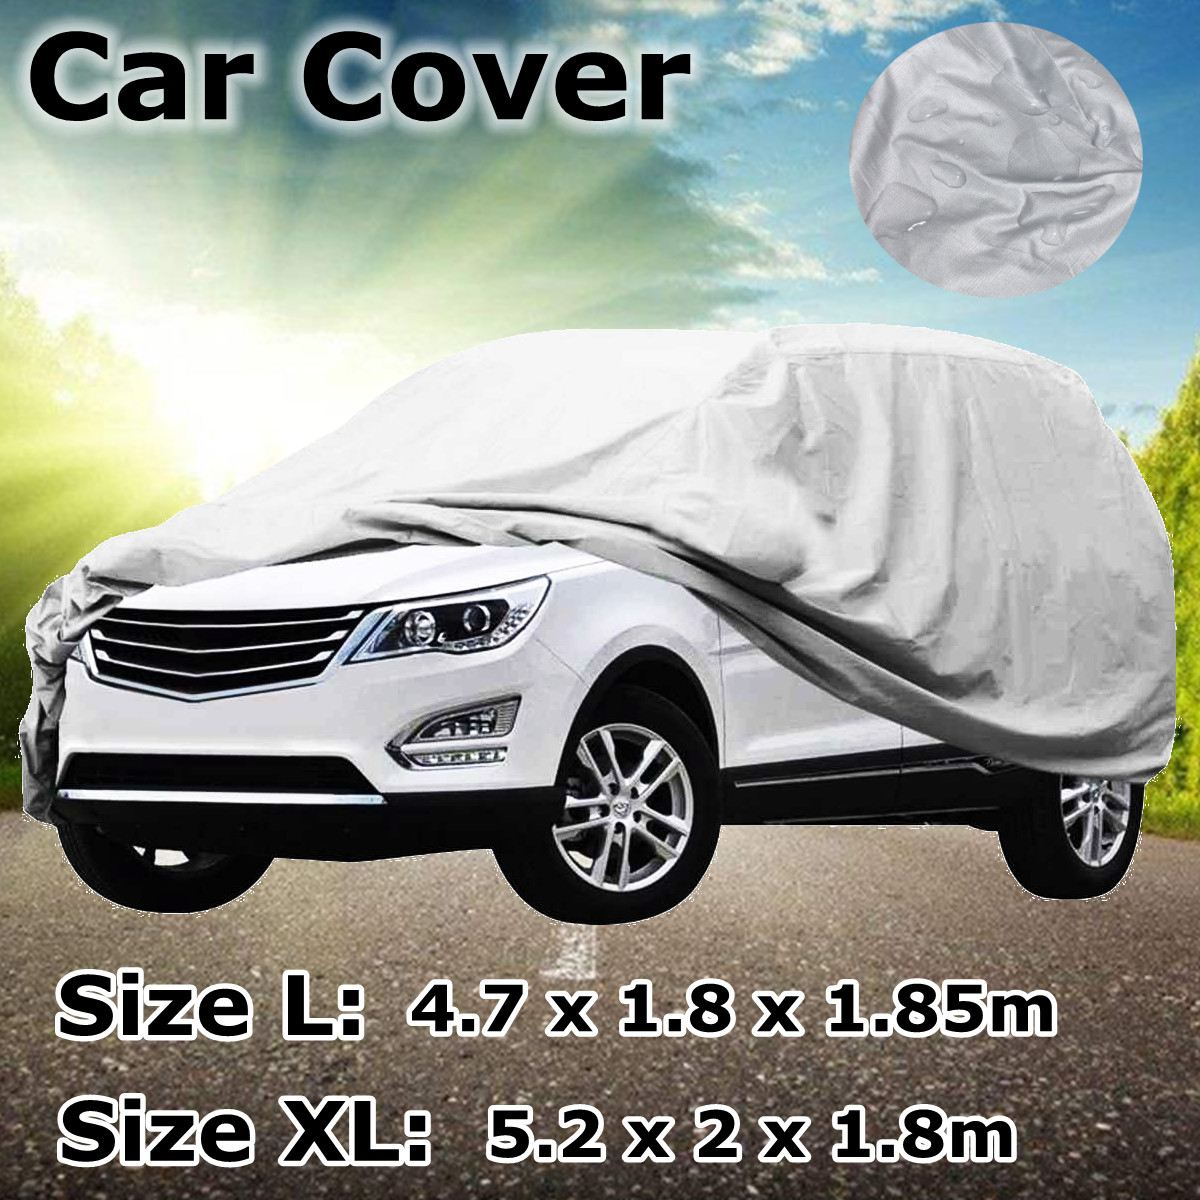 Car-Cover Protection Snow Waterproof Outdoor Ice Sun-Rain-Resistant SUV L/xl-Size title=